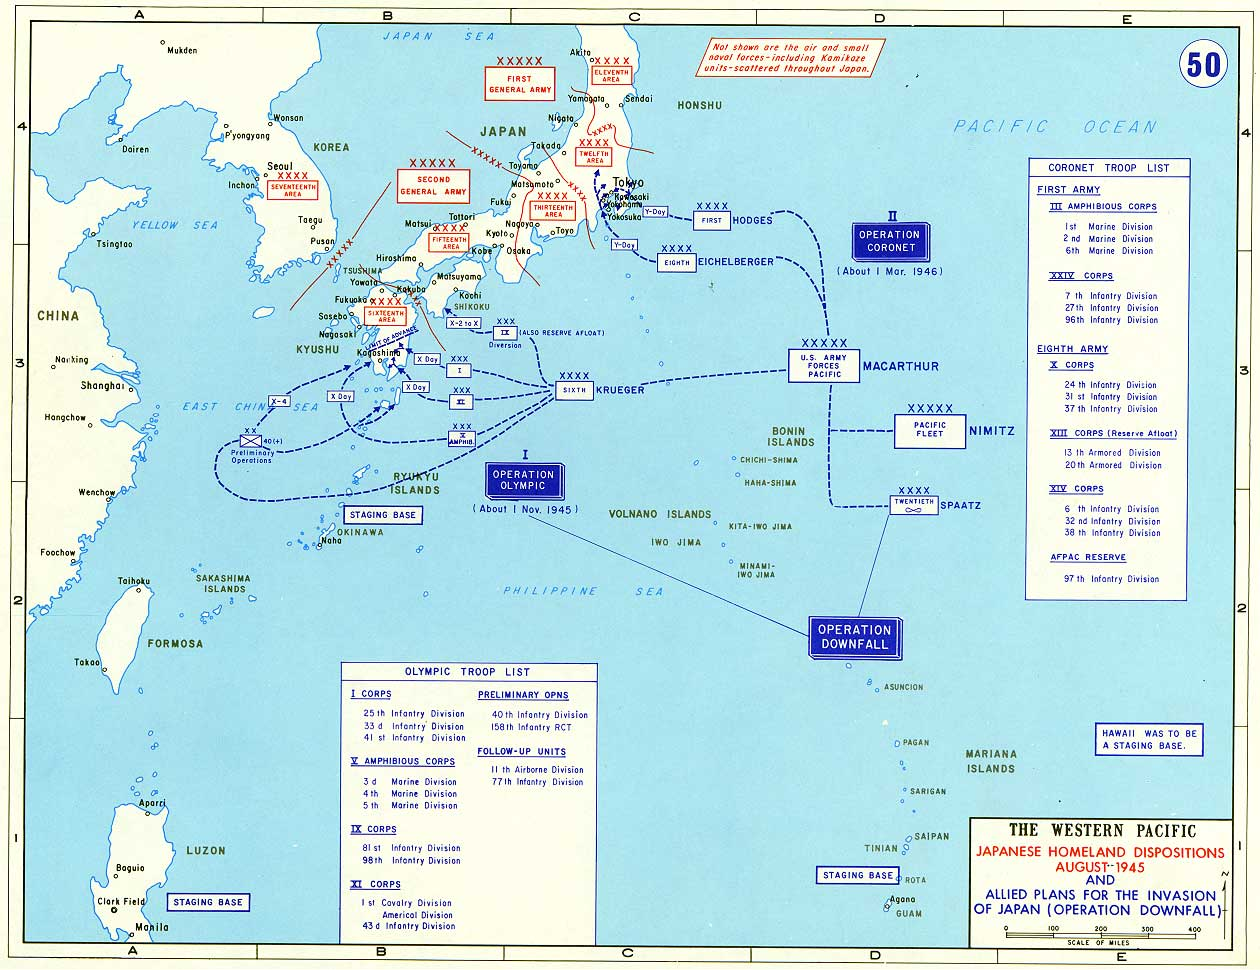 Allied Plans for the Invasion of Japan, August 1945